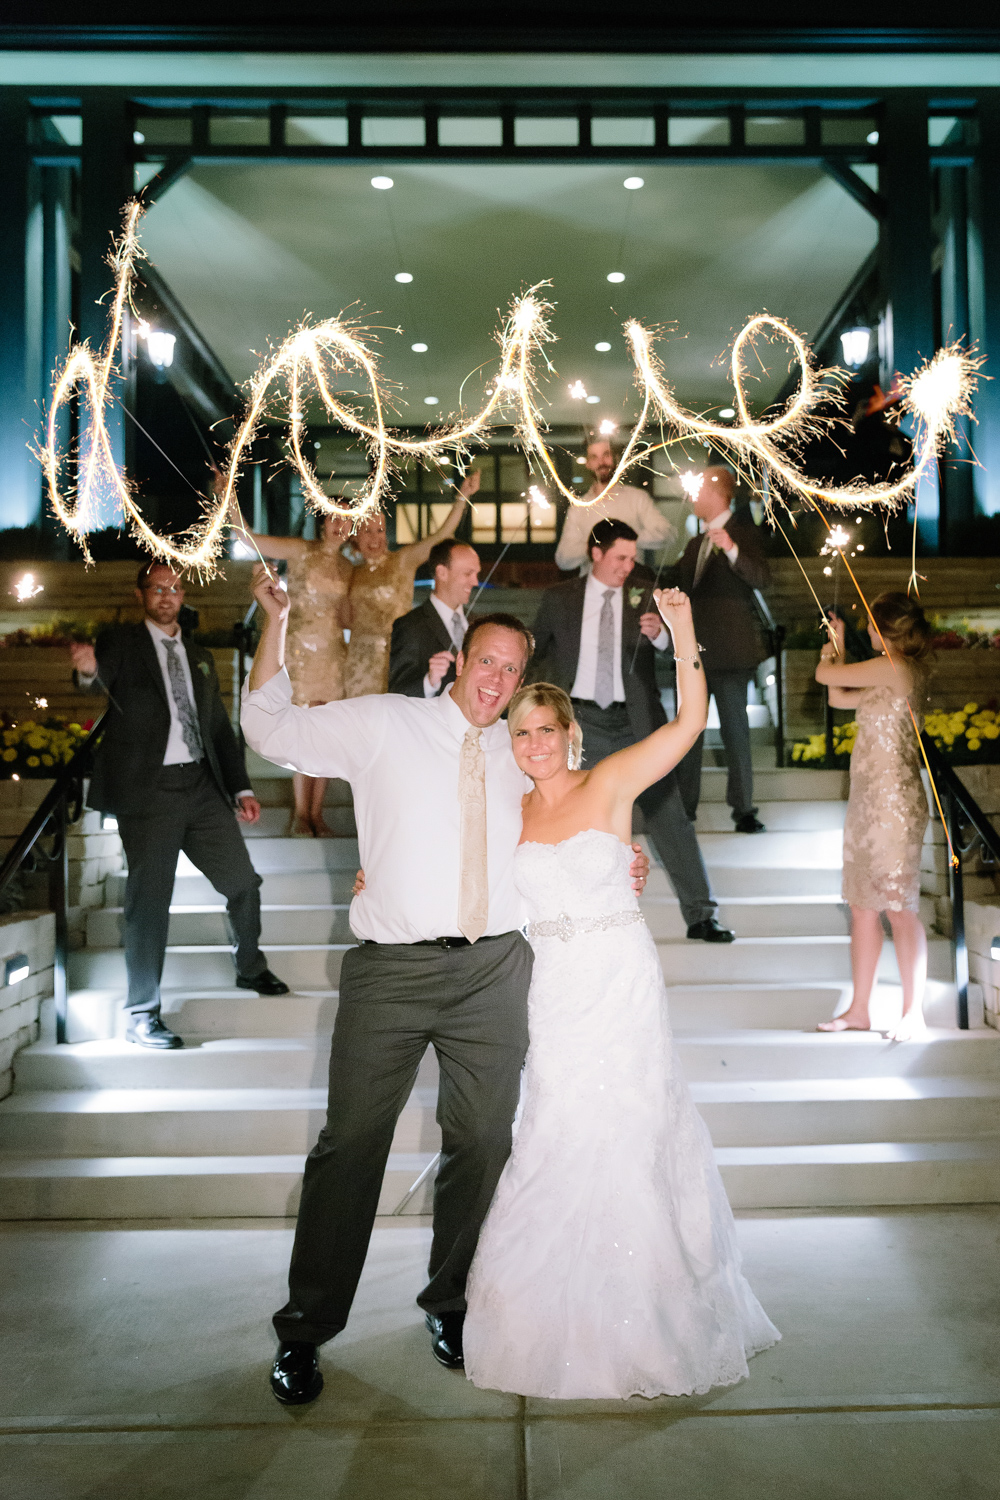 BridalPulse - Golf Lovers' Country Club Wedding - love written out with sparklers